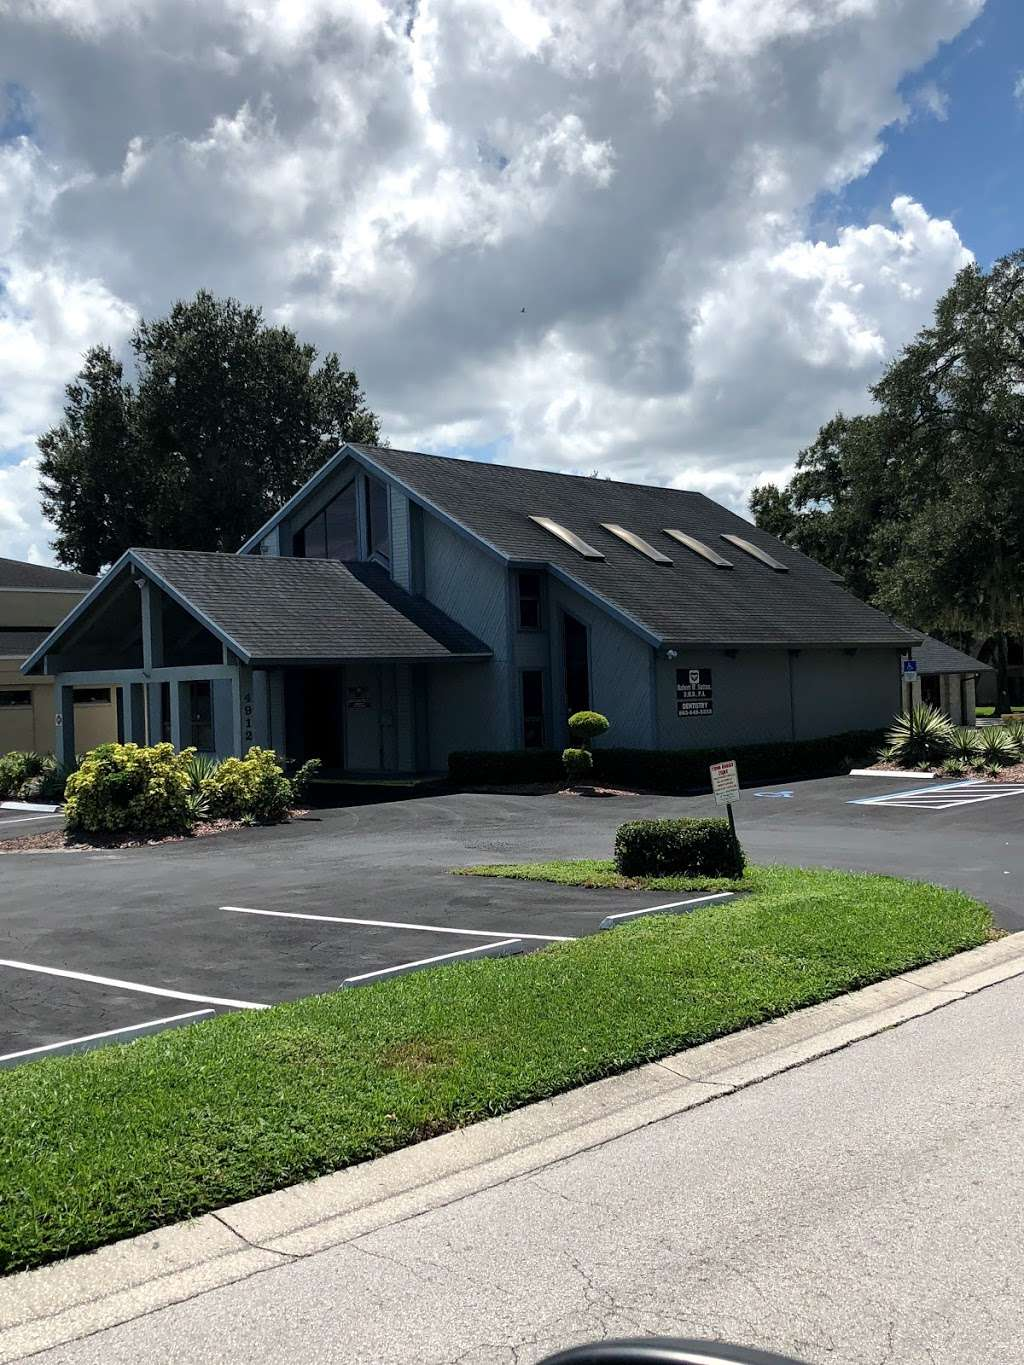 Lumina Dental Lakeland (formerly Dr. Sutton) - dentist  | Photo 2 of 10 | Address: 4912 Southfork Dr, Lakeland, FL 33813, USA | Phone: (863) 455-4348